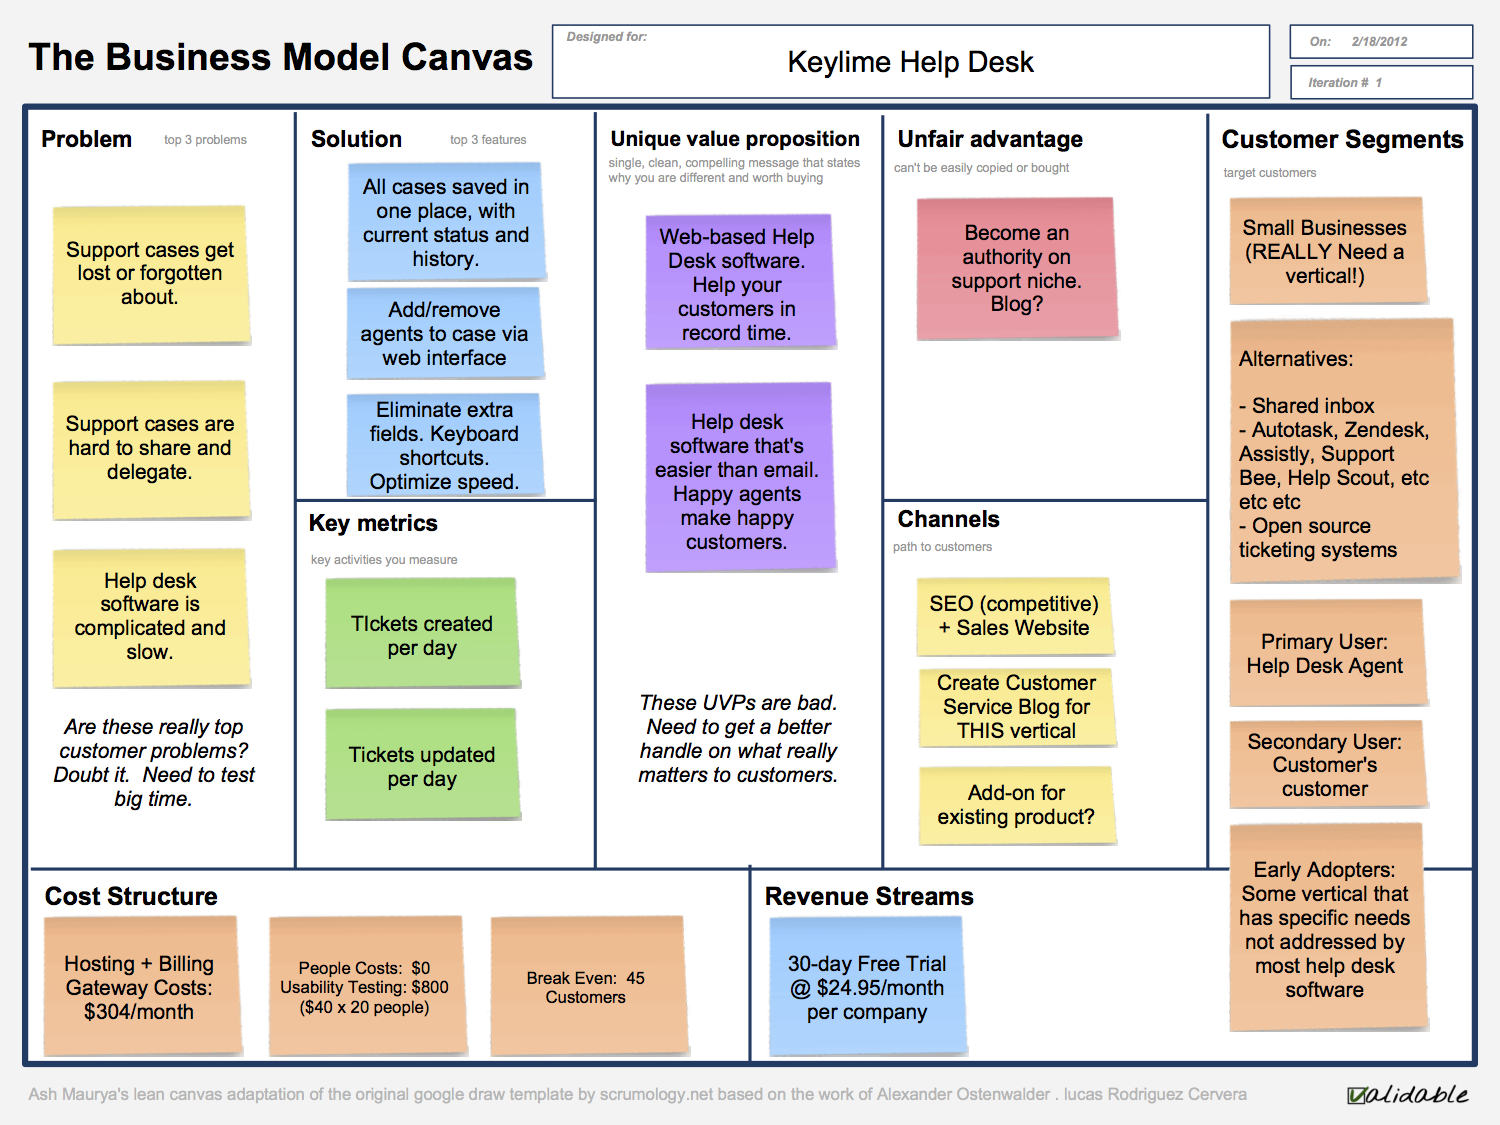 17 Best images about Business Model Canvas on Pinterest | The ...